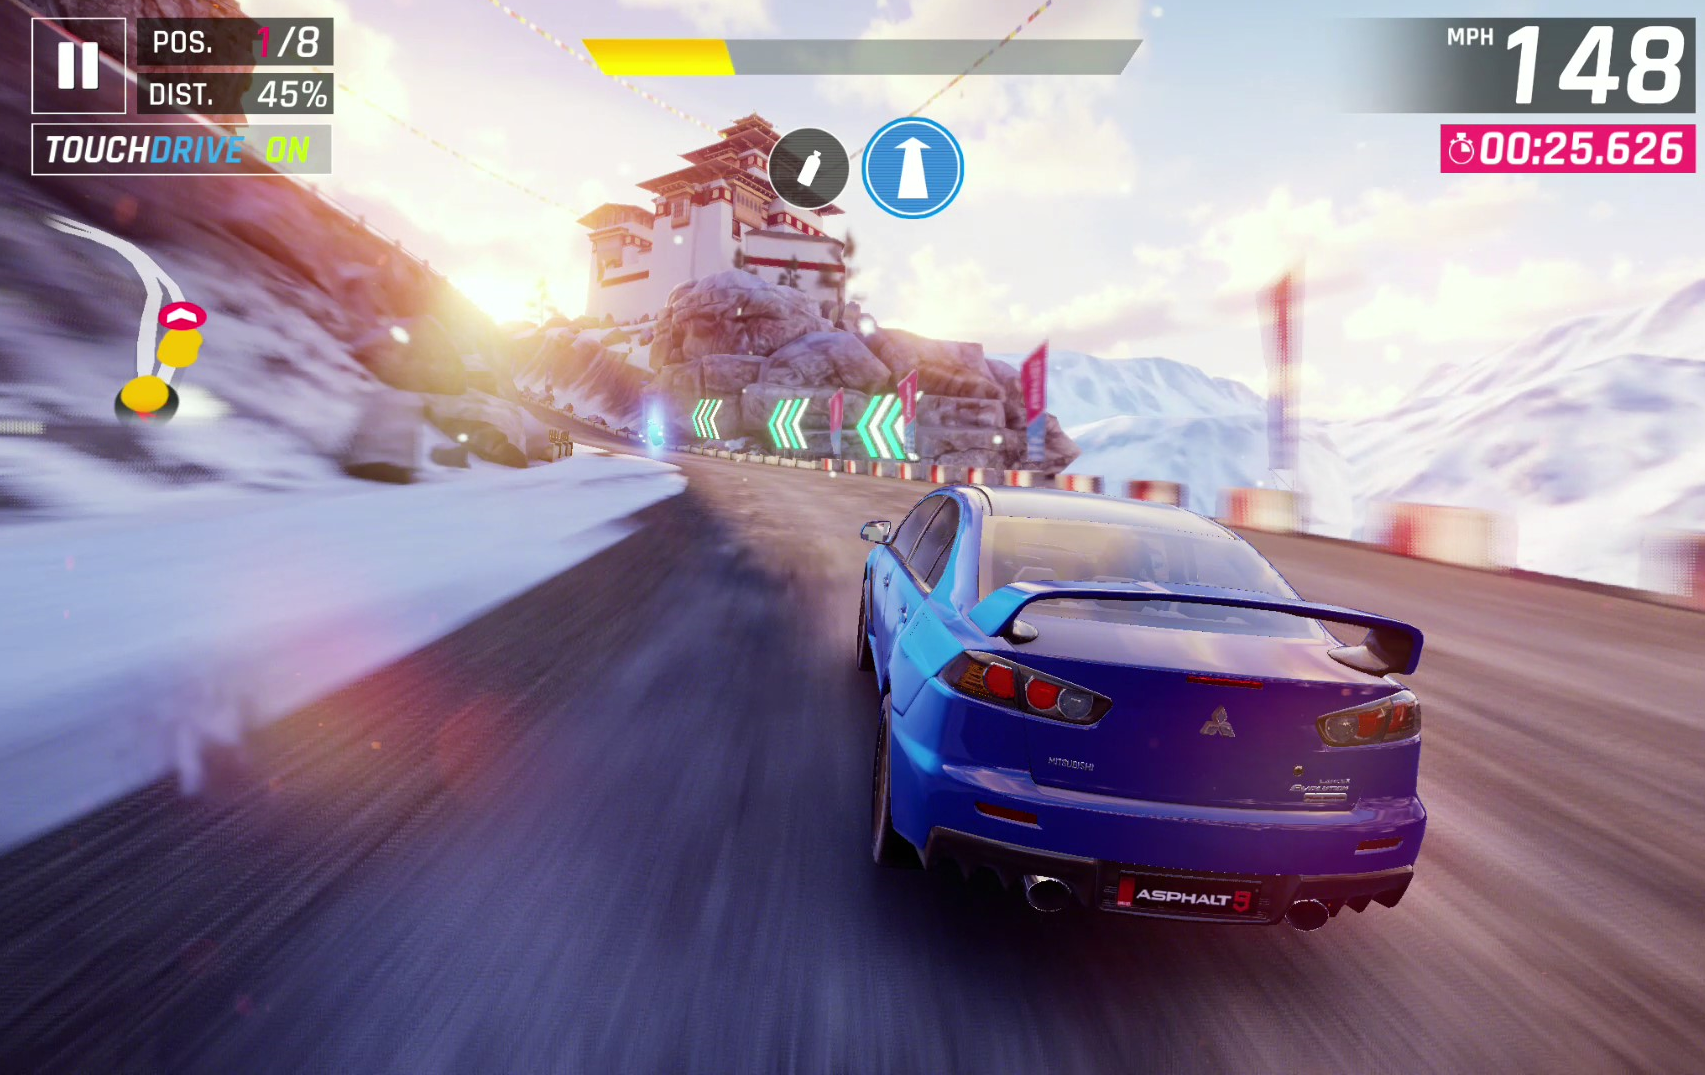 Screenshot of Asphalt 9 Legends showing vehicle approaching a turn at speed.